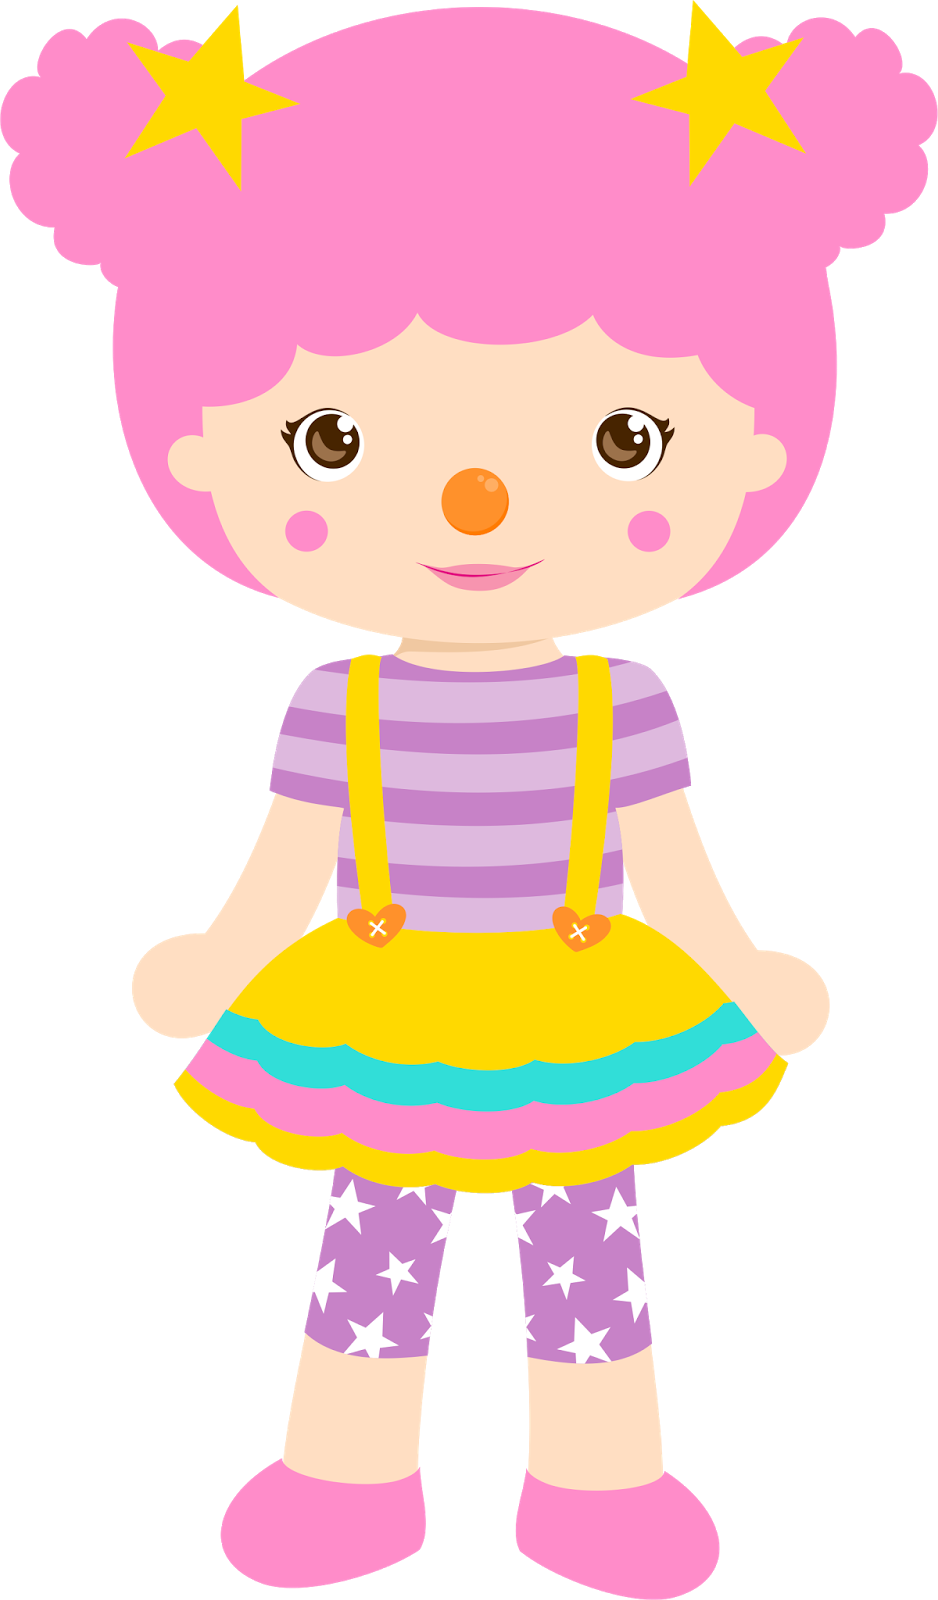 Festival clipart string flag. Clown girls png cumplea